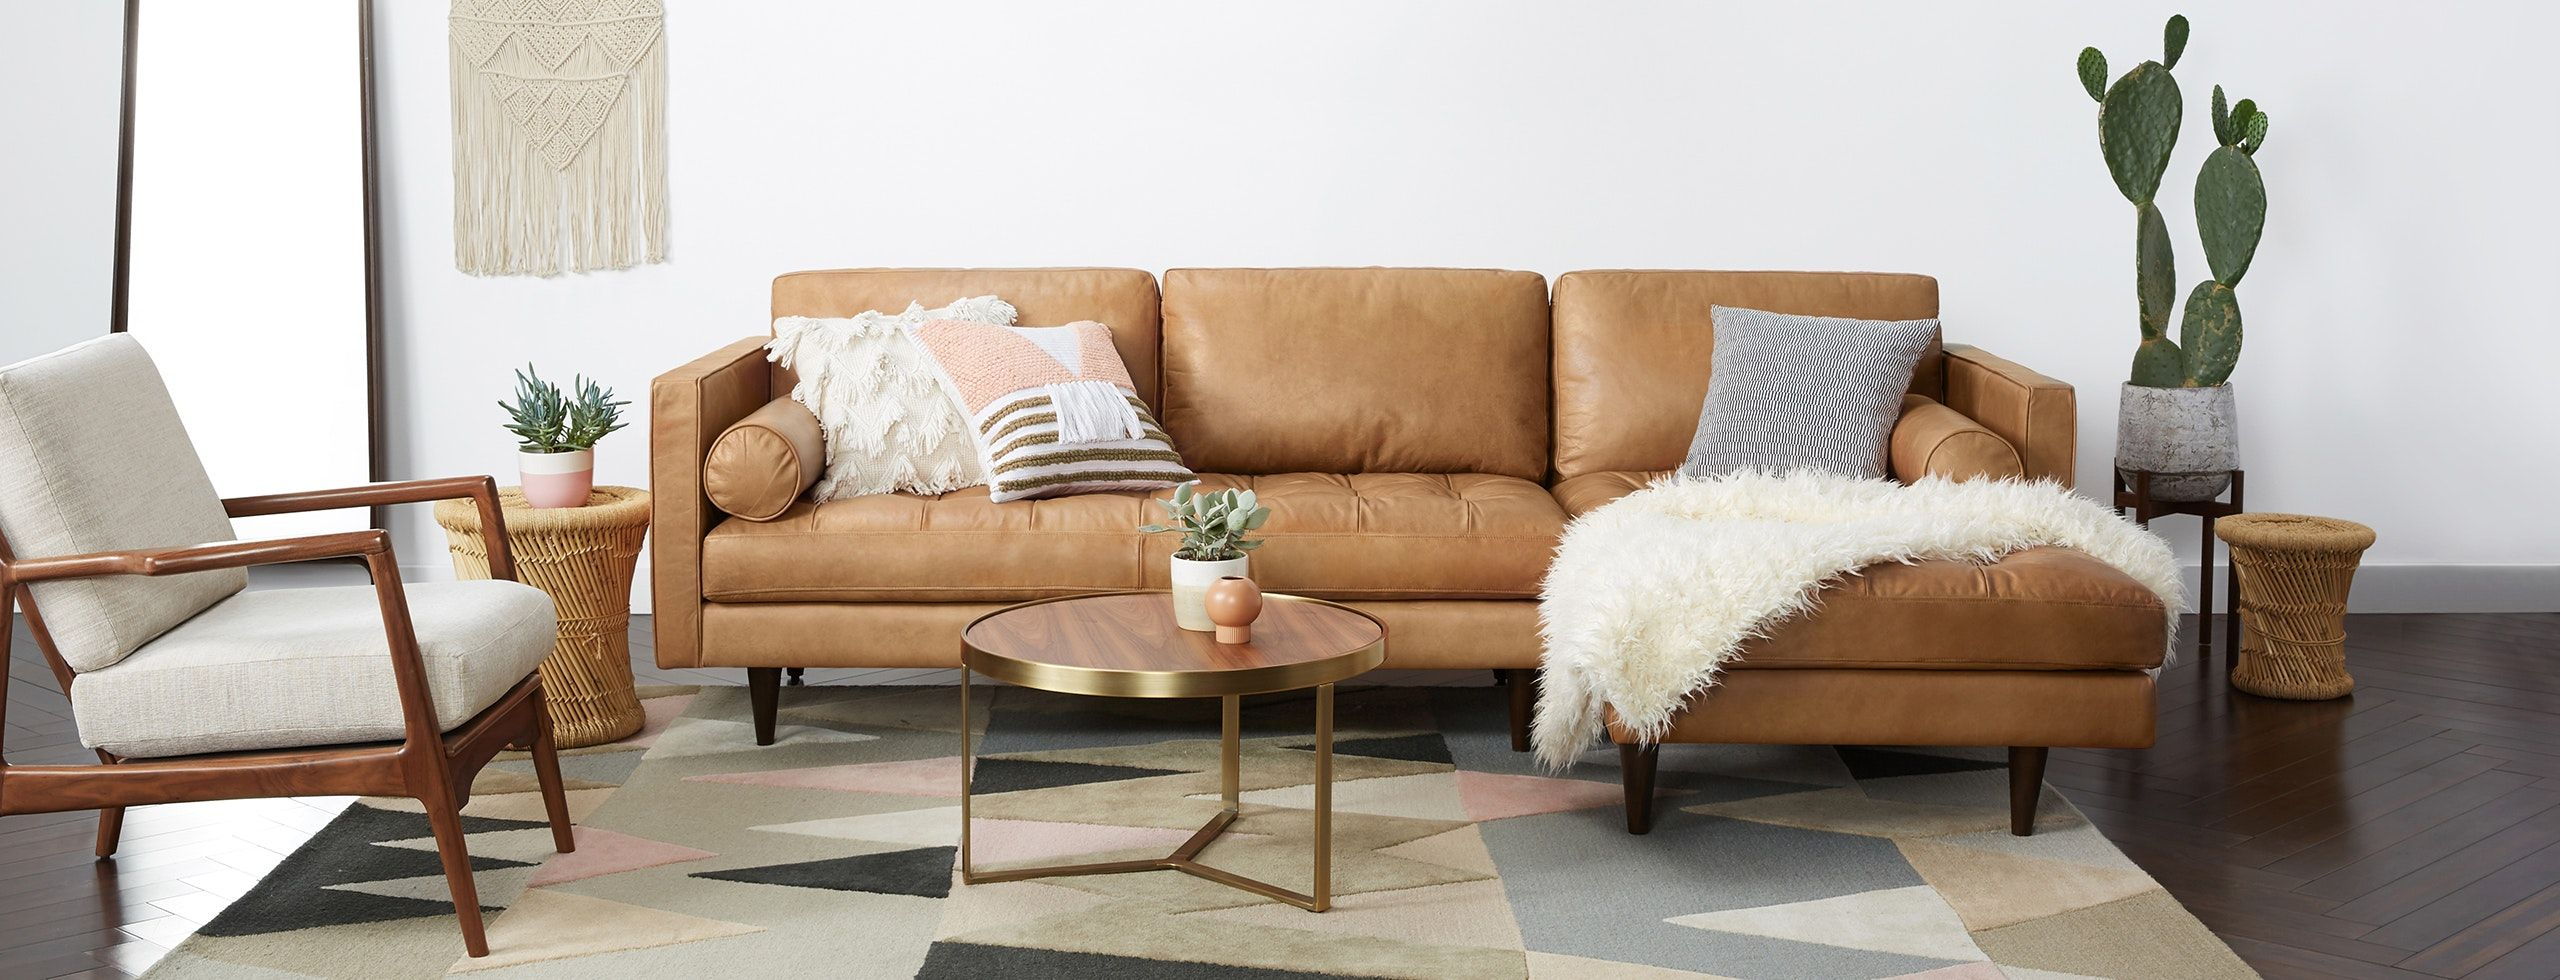 Briar Leather Sectional Small Apartment Living Room Layout